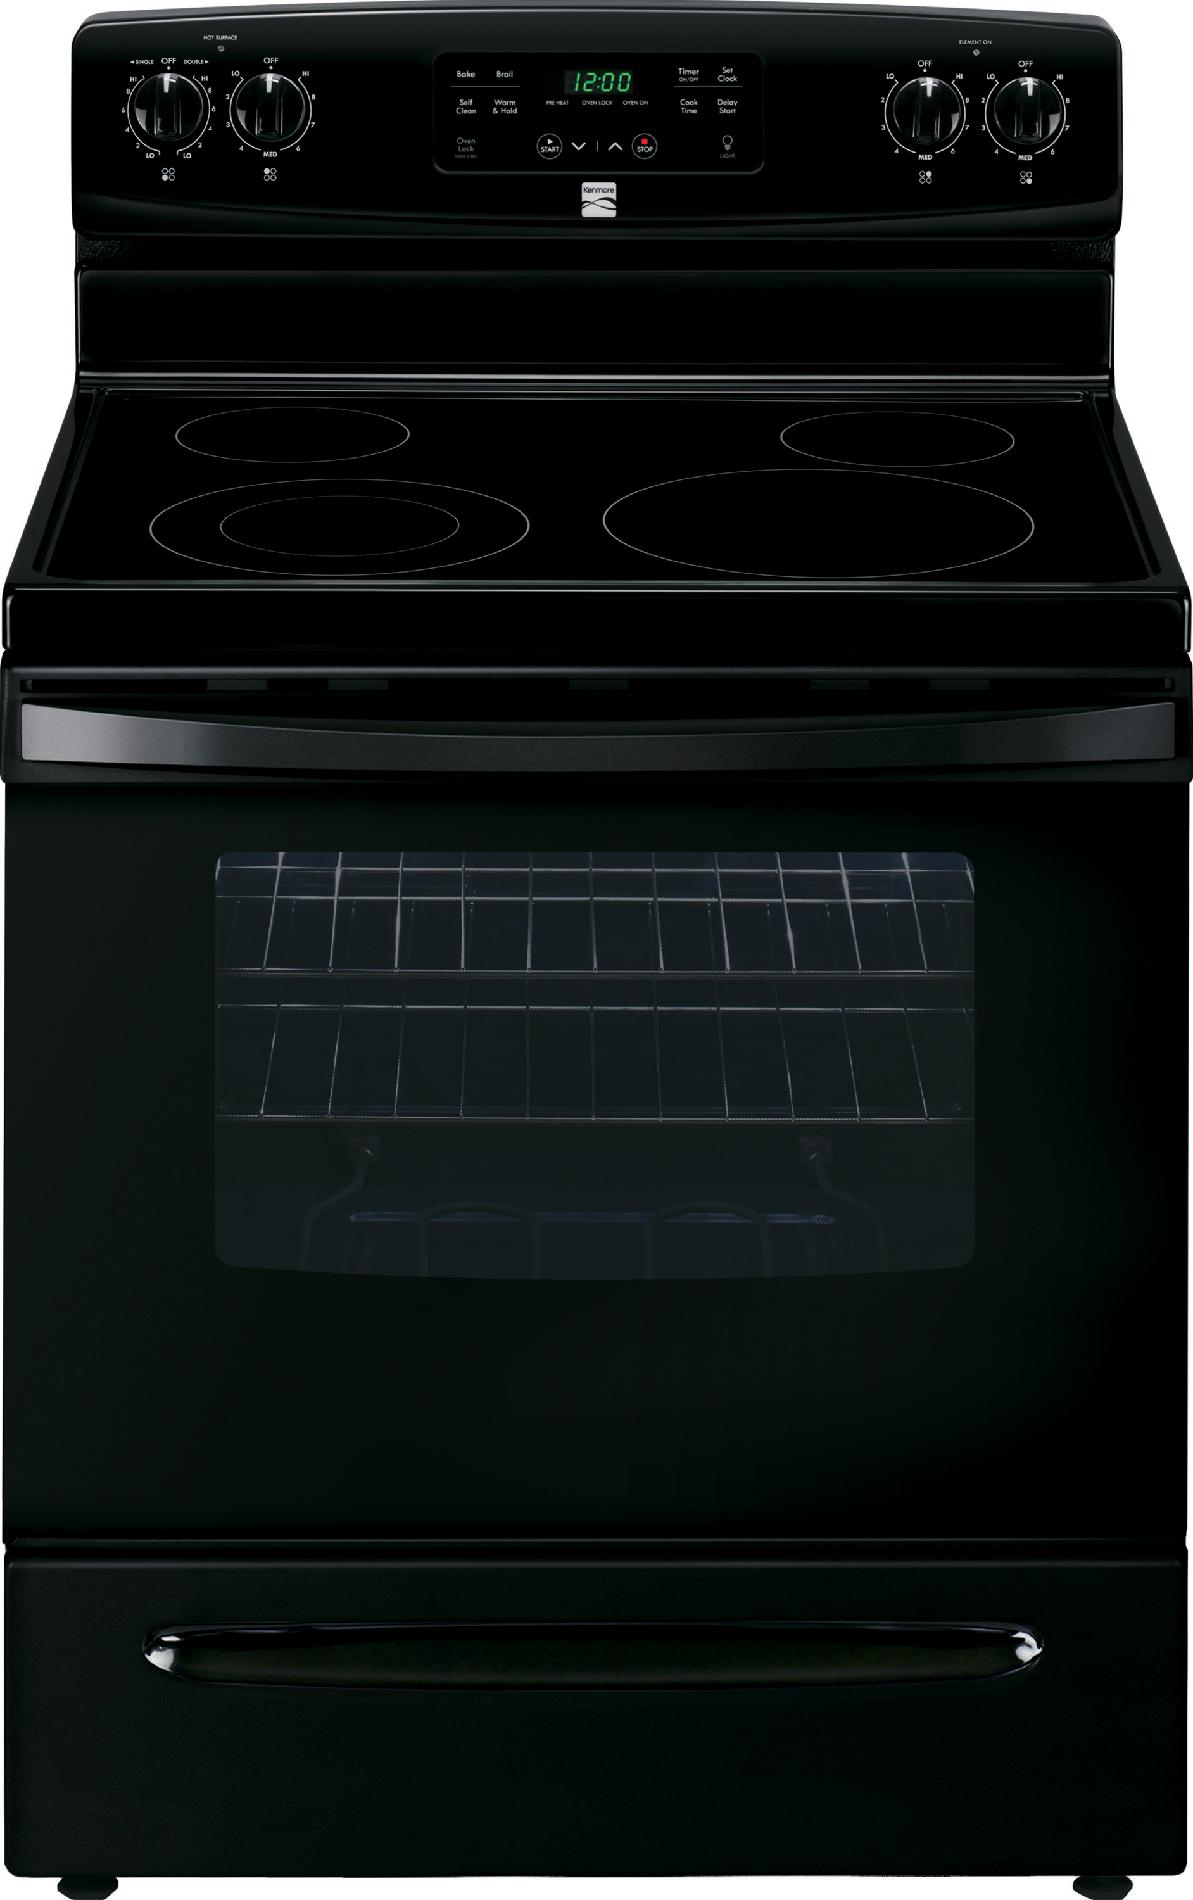 Kenmore 94179 5.3 cu. ft. Self-Cleaning Electric Range - Black